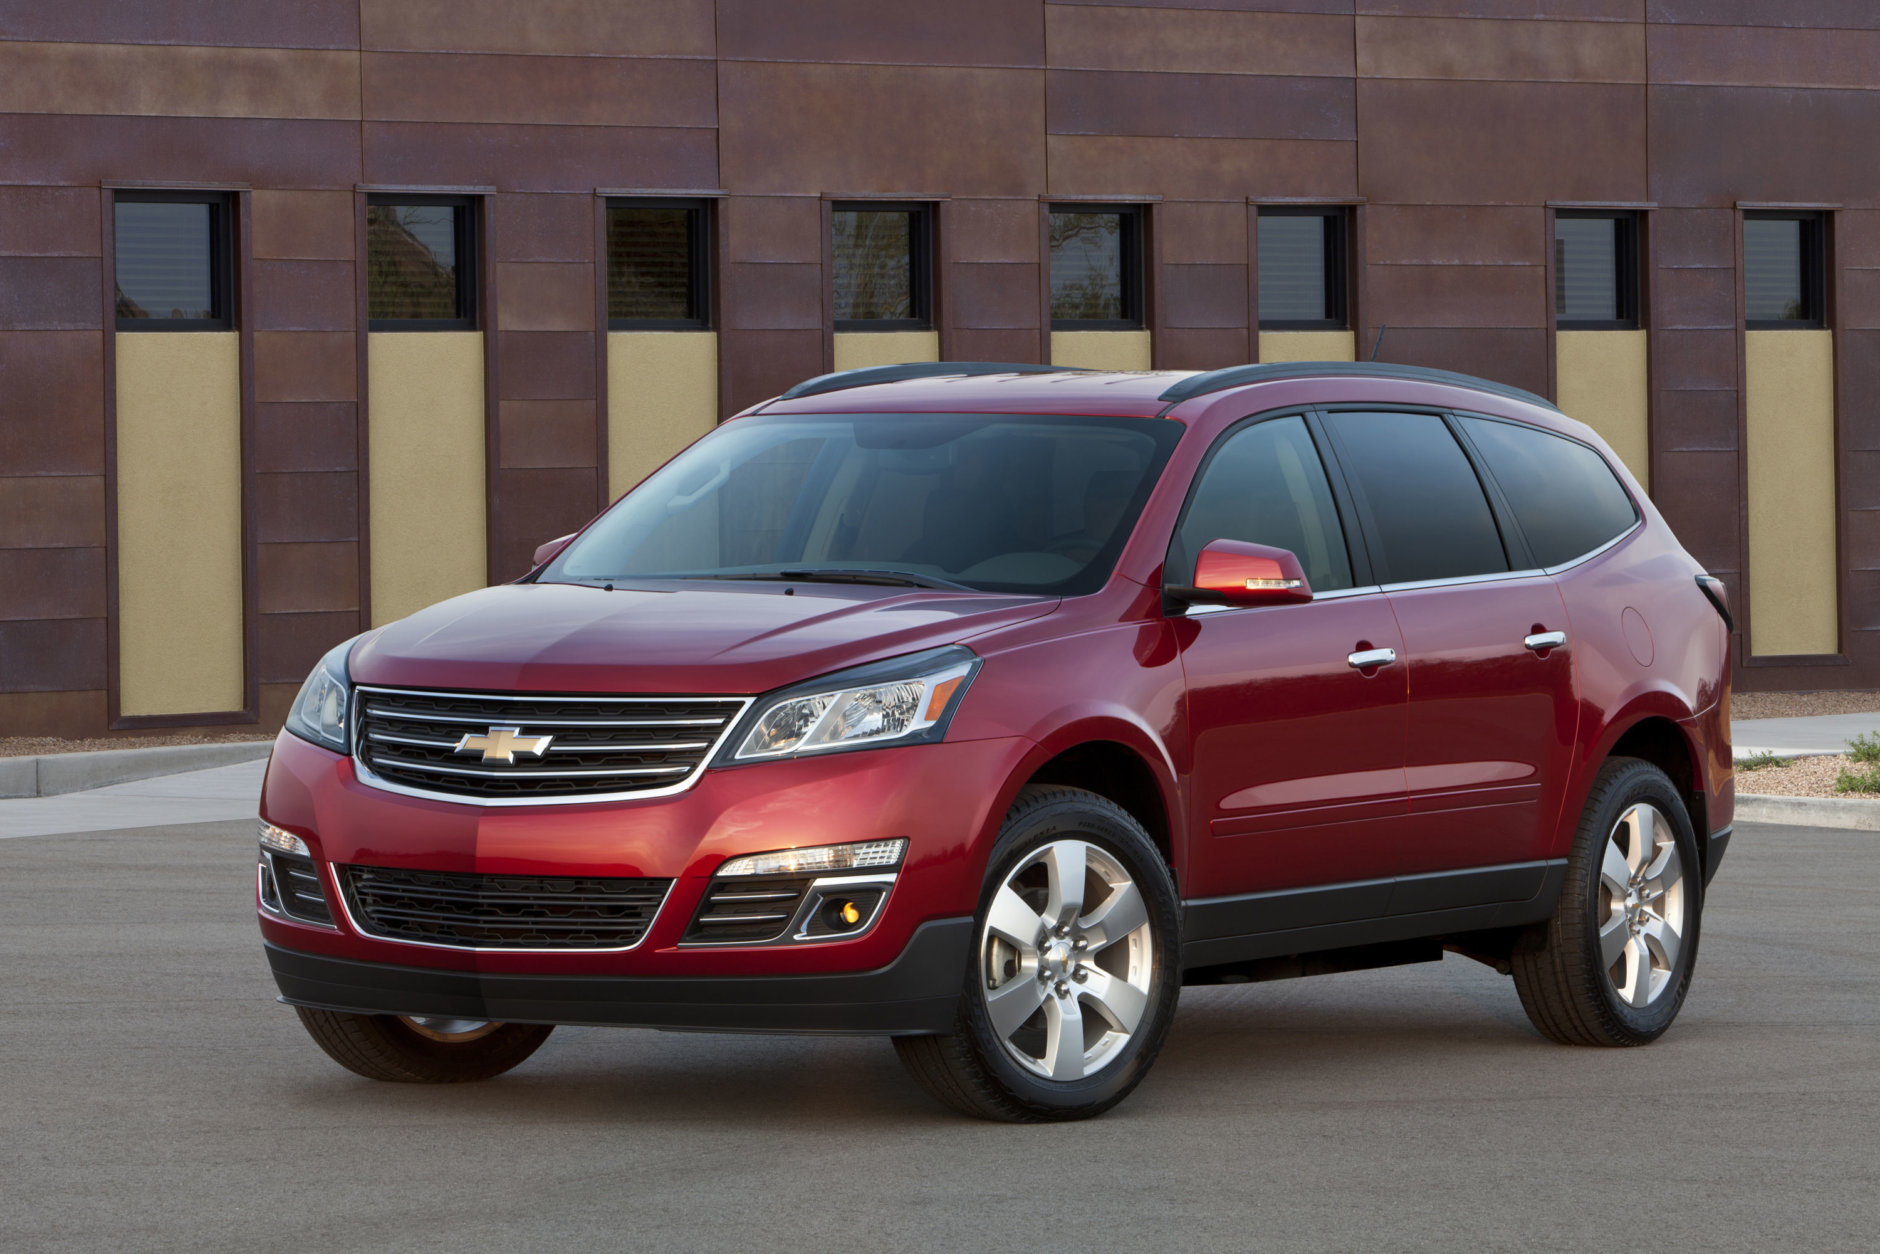 Best Used SUV/Crossover for Teens:  The 2015 Chevrolet Traverse  (Courtesy General Motors)